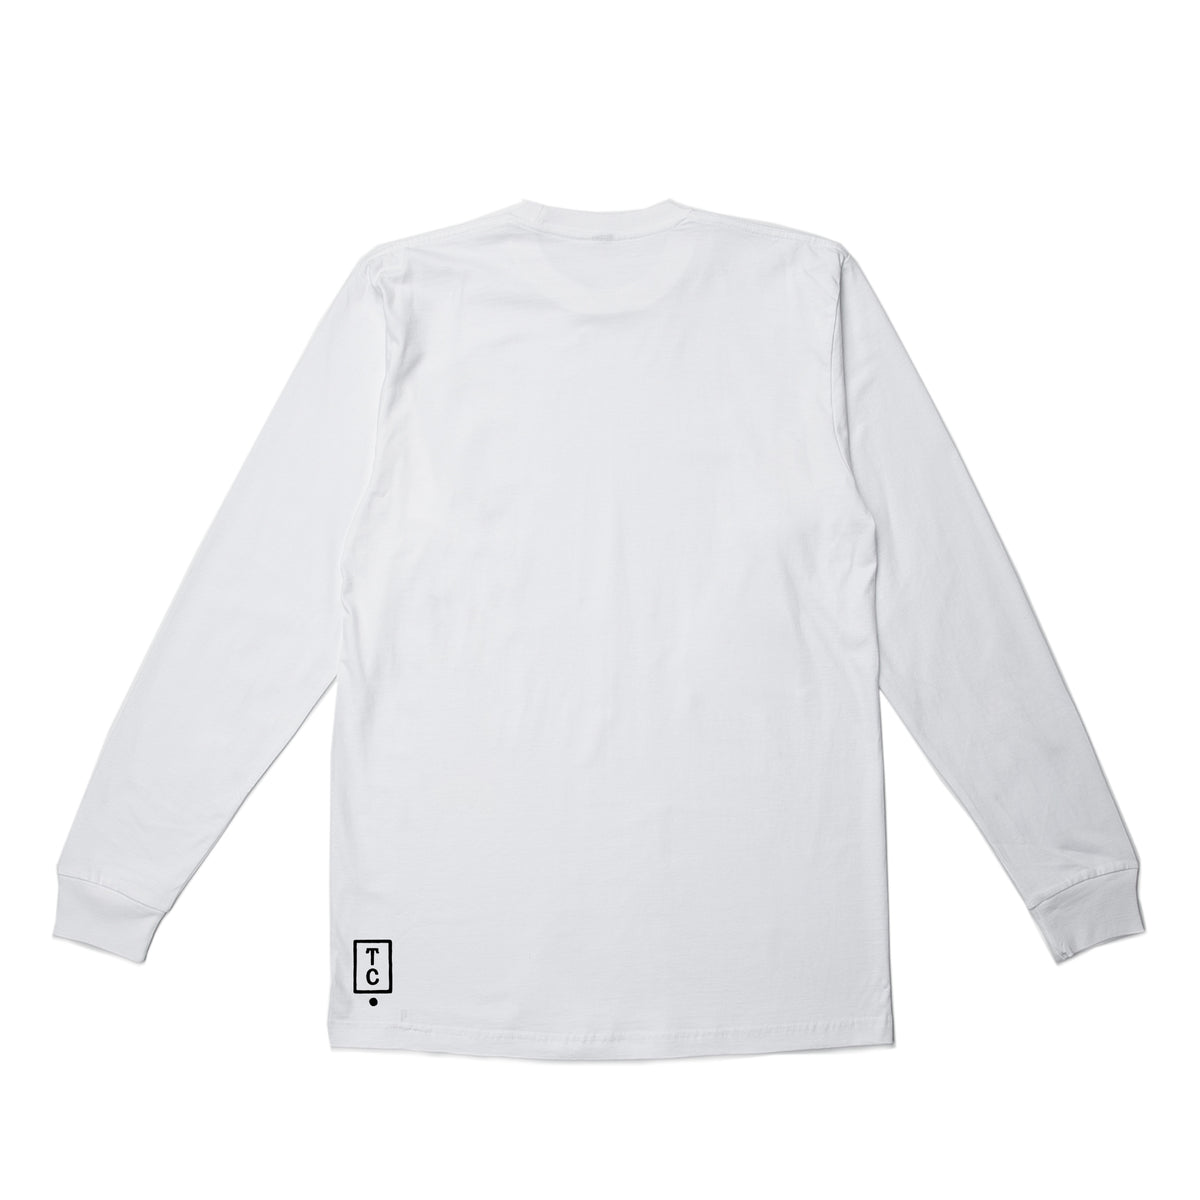 Superior LS Tee - White